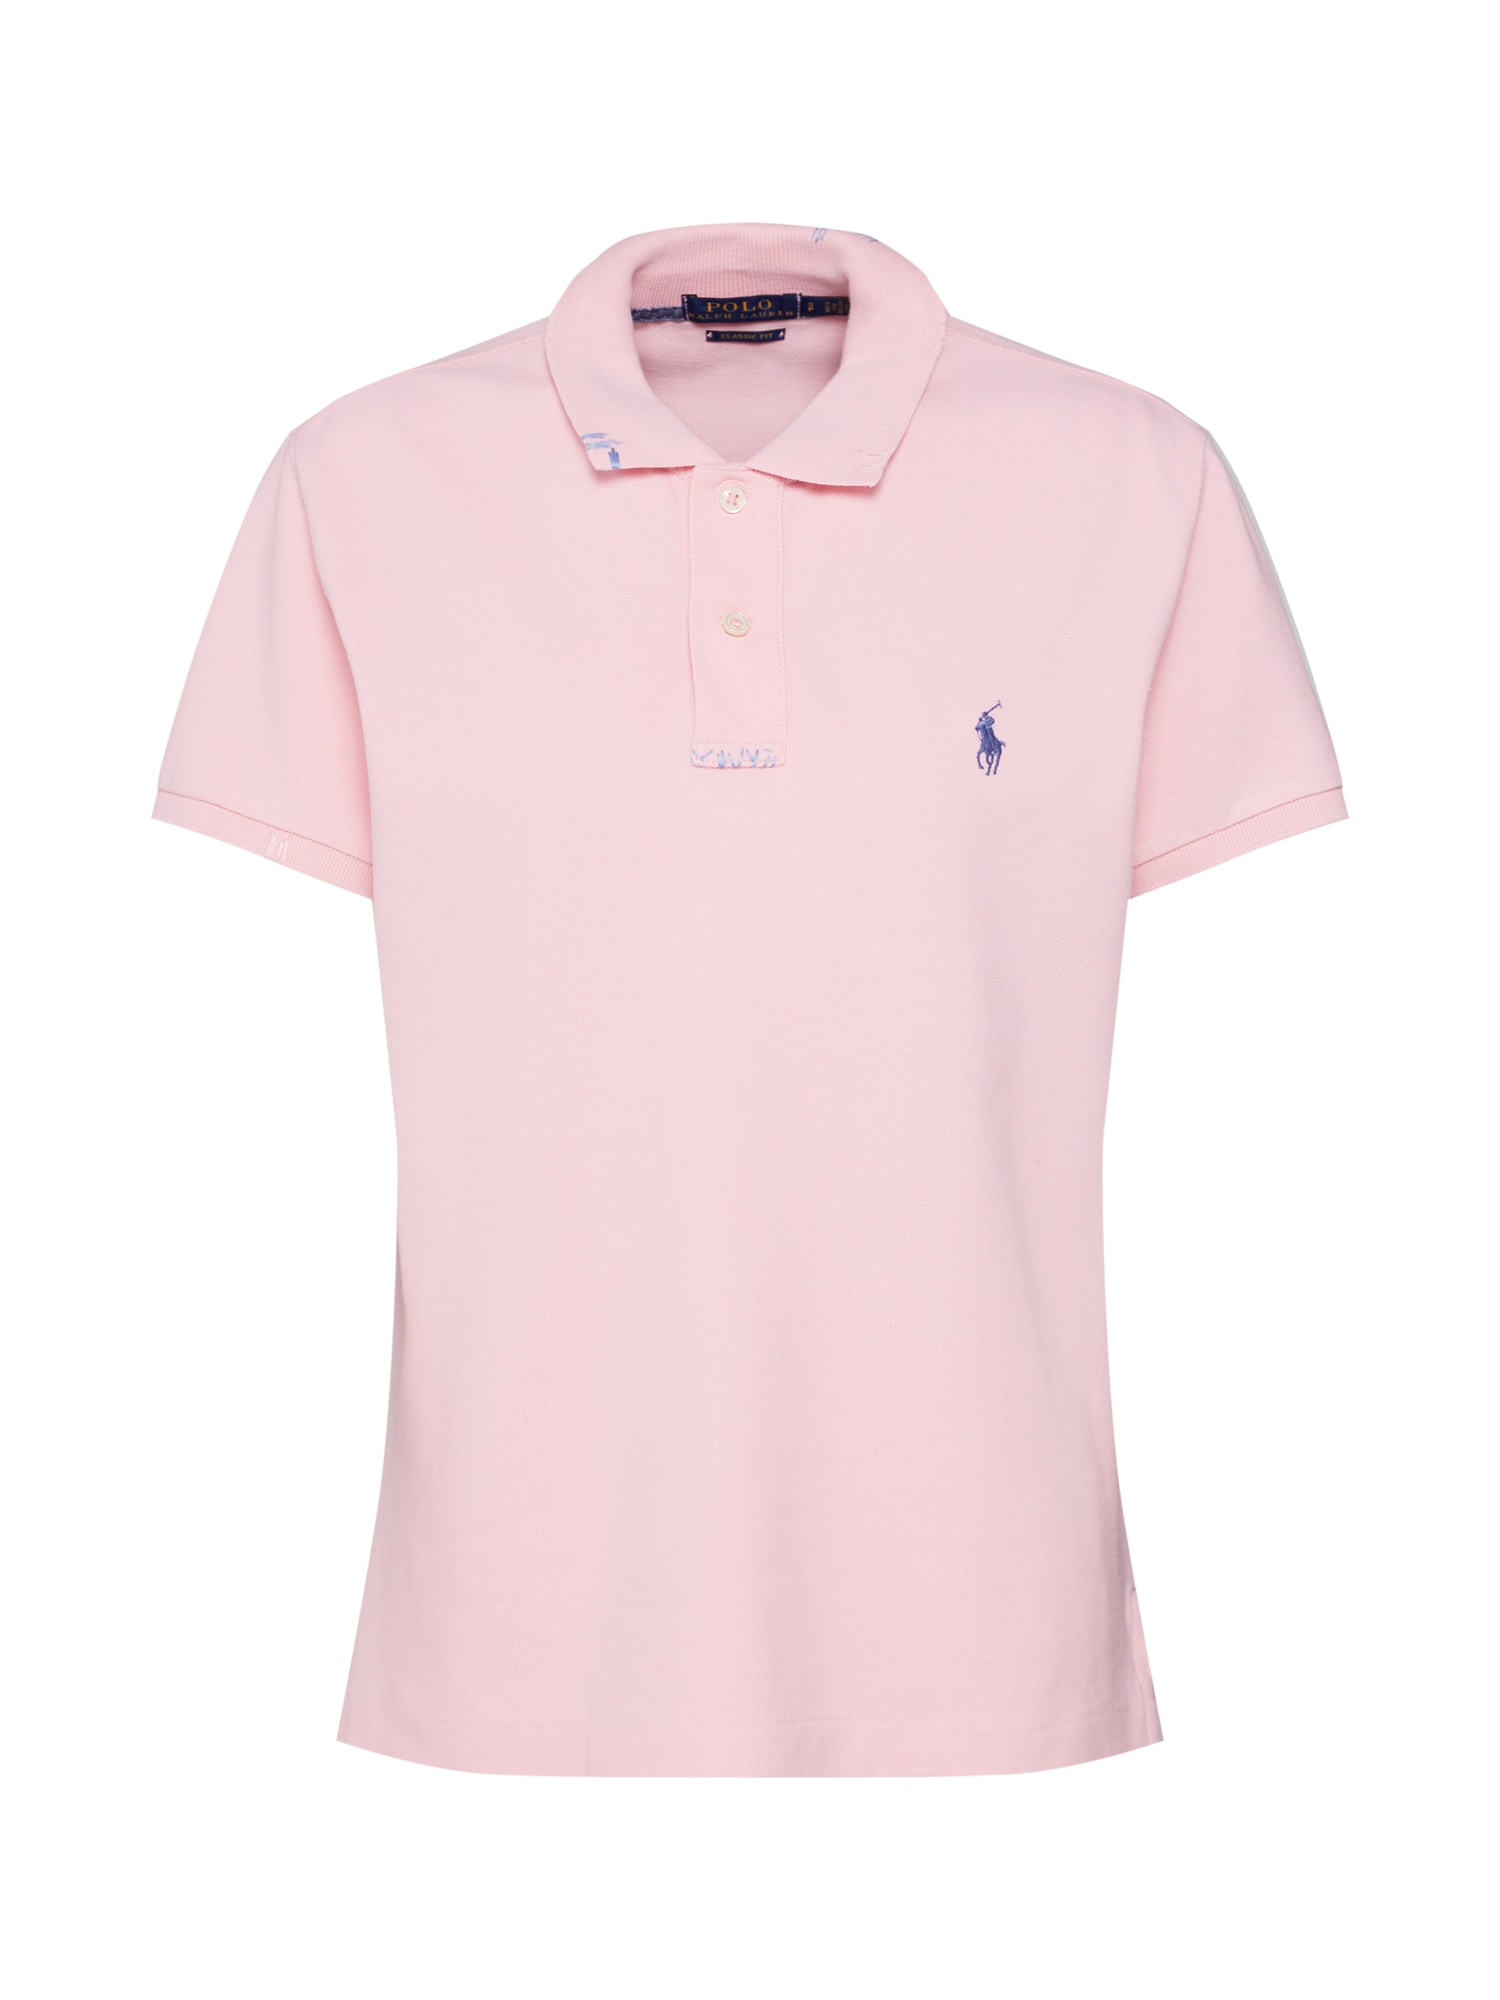 Tričko FIT RM-CLASSIC-SHORT SLEEVE-KNIT fialová POLO RALPH LAUREN